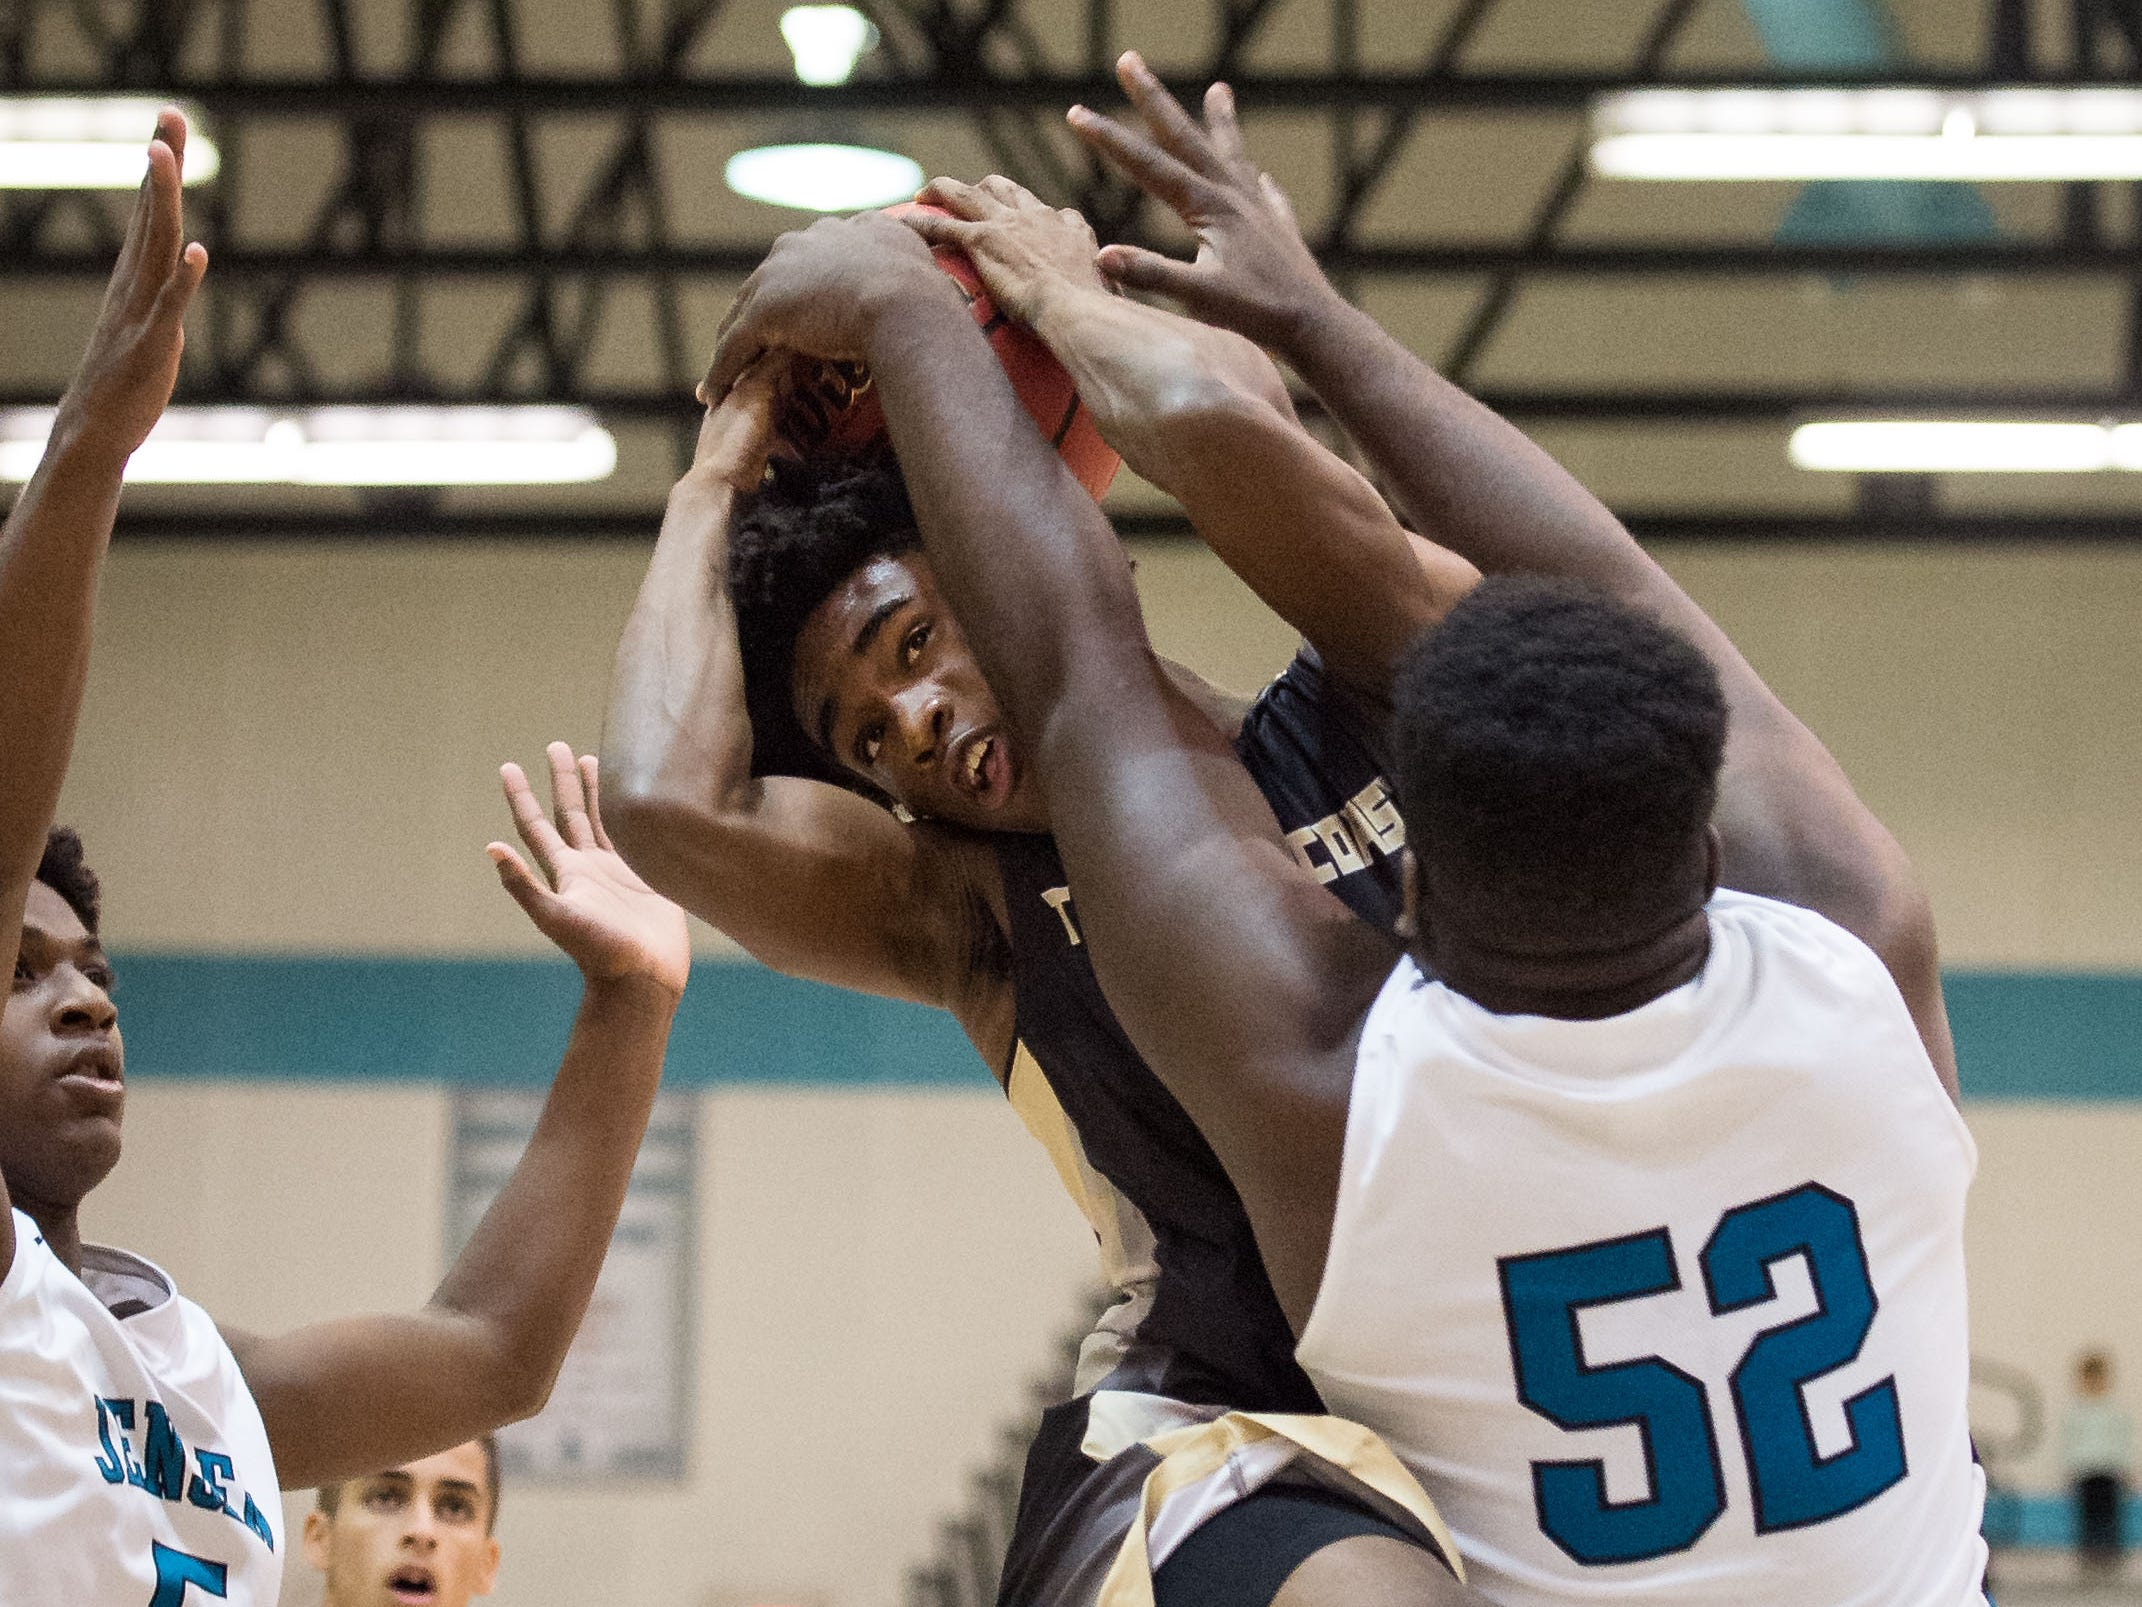 Treasure Coast's Nemuel Robinson (center) is stopped up by Jensen Beach's Emanuel Rogers during the first period of the high school boys basketball game Tuesday, Dec. 4, 2018, at Jensen Beach High School.